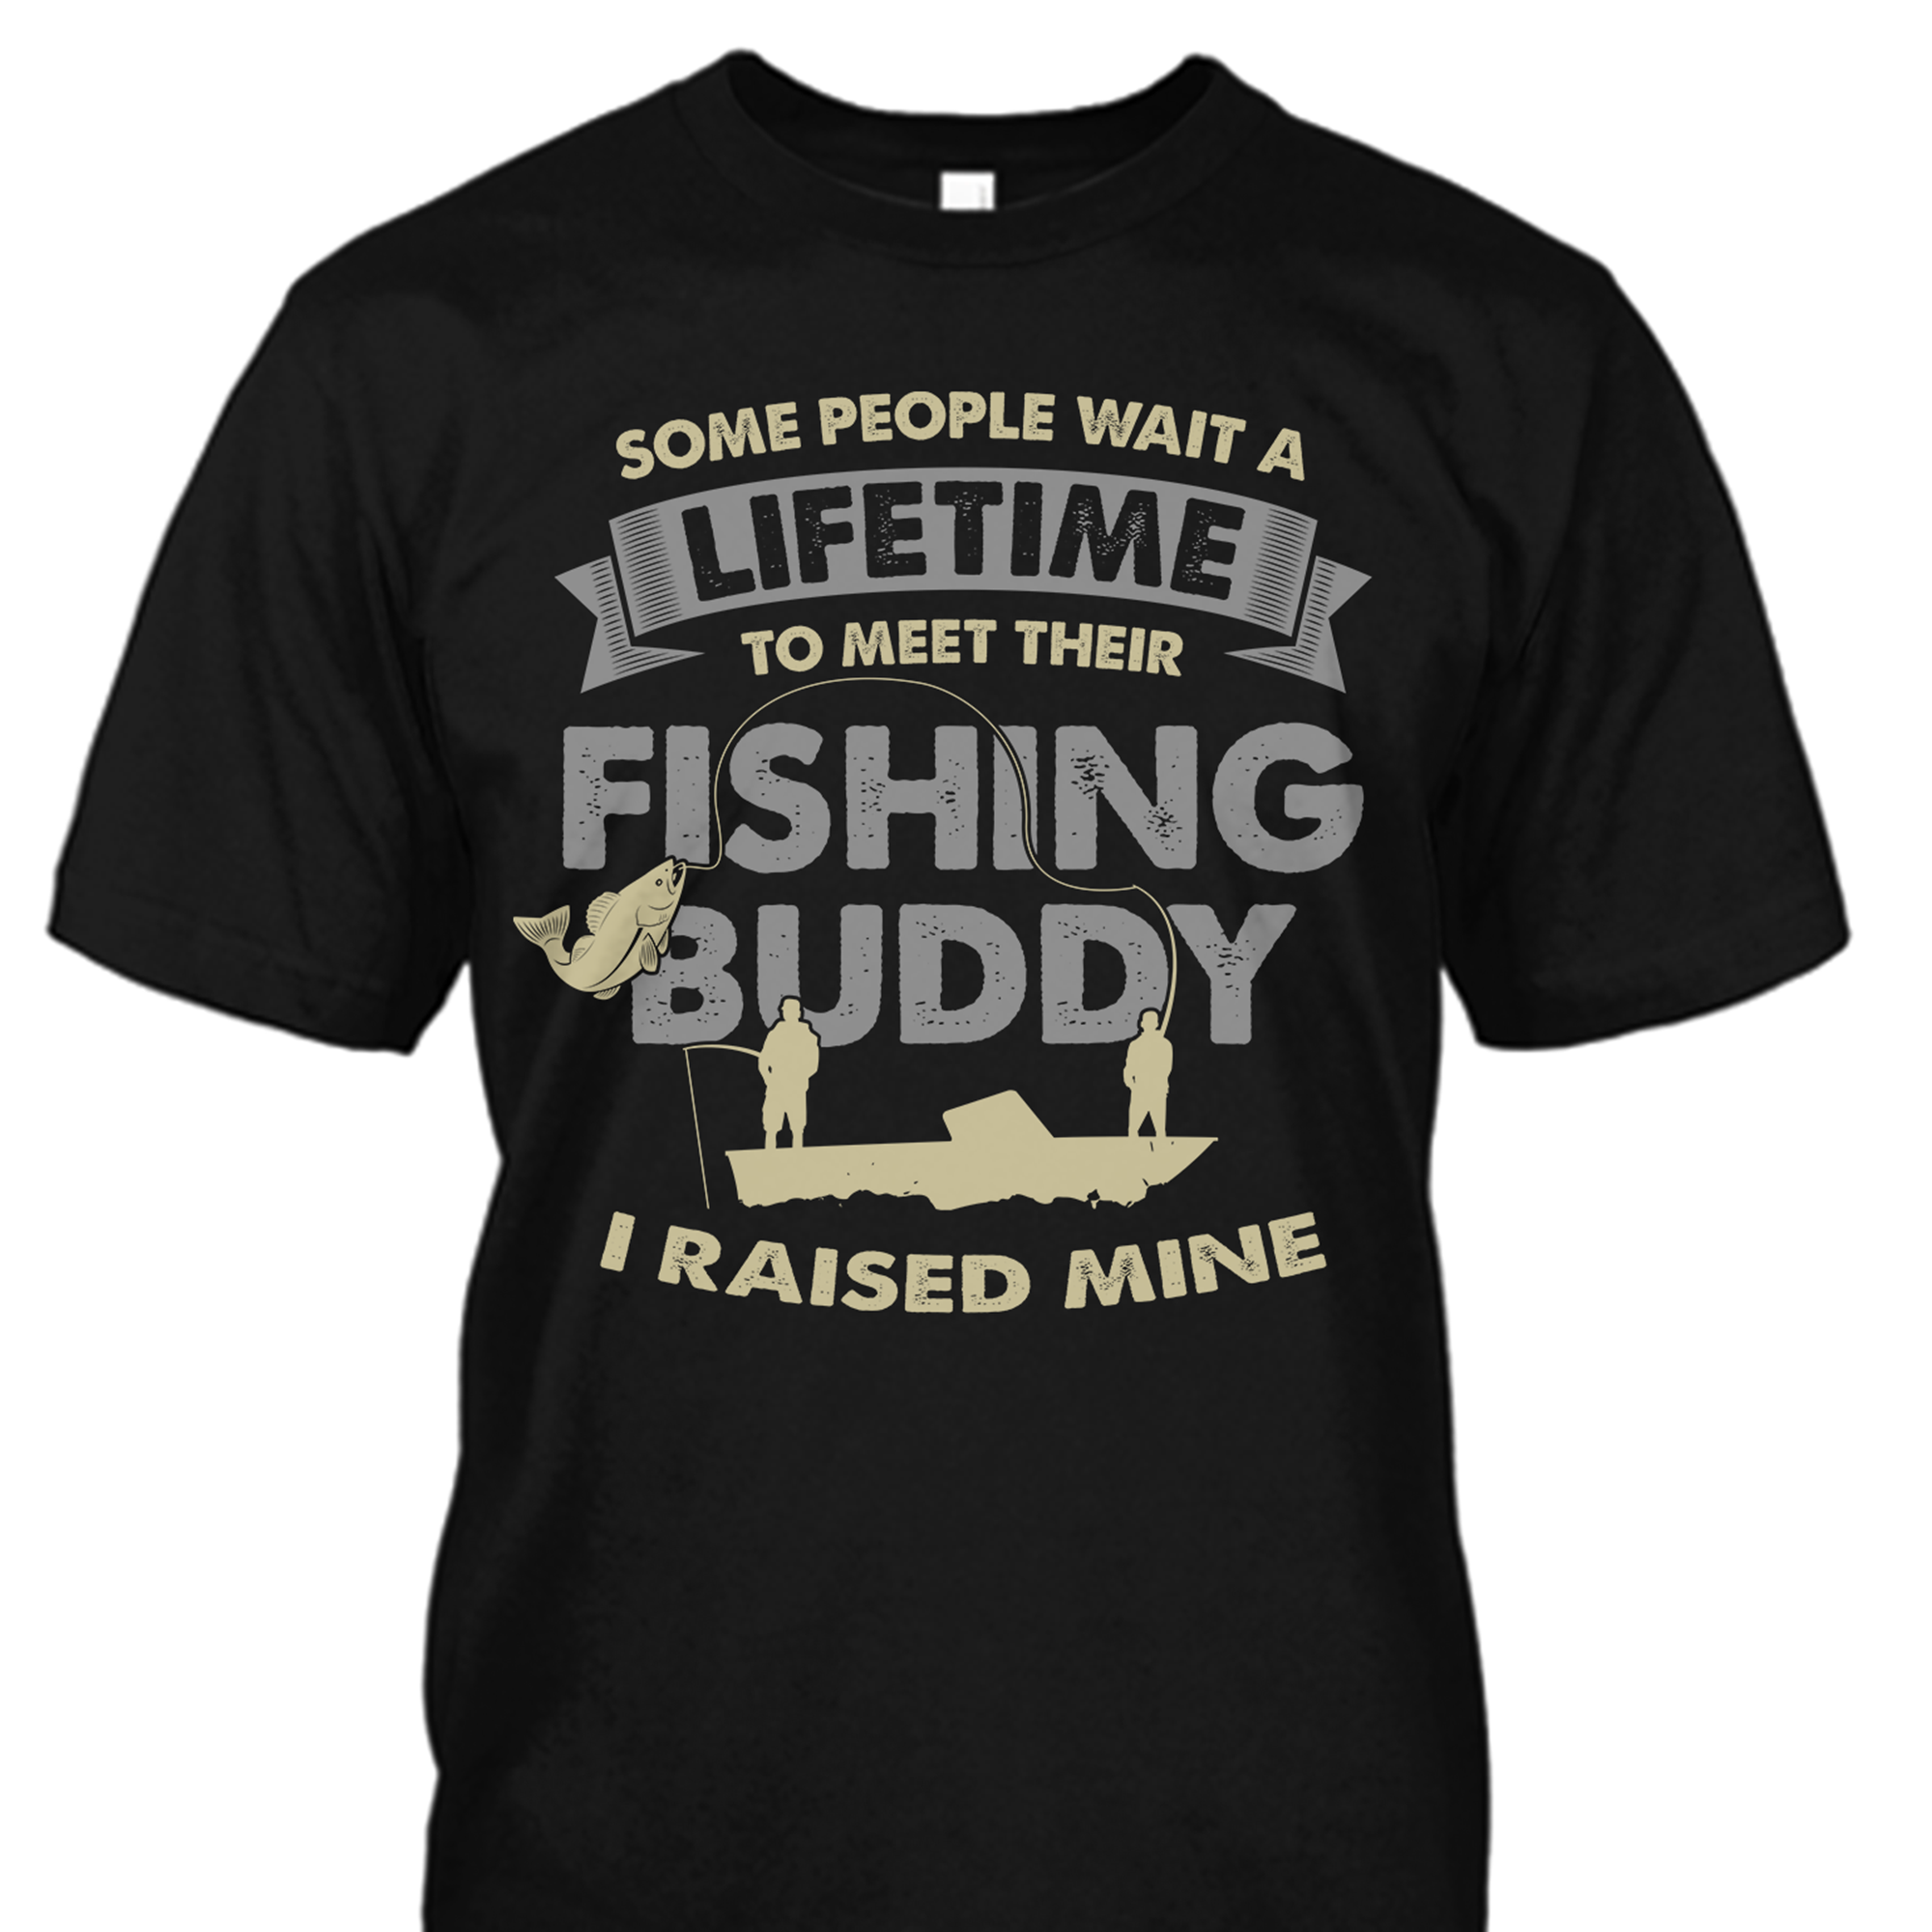 Did You Raise Your Fishing Buddy?